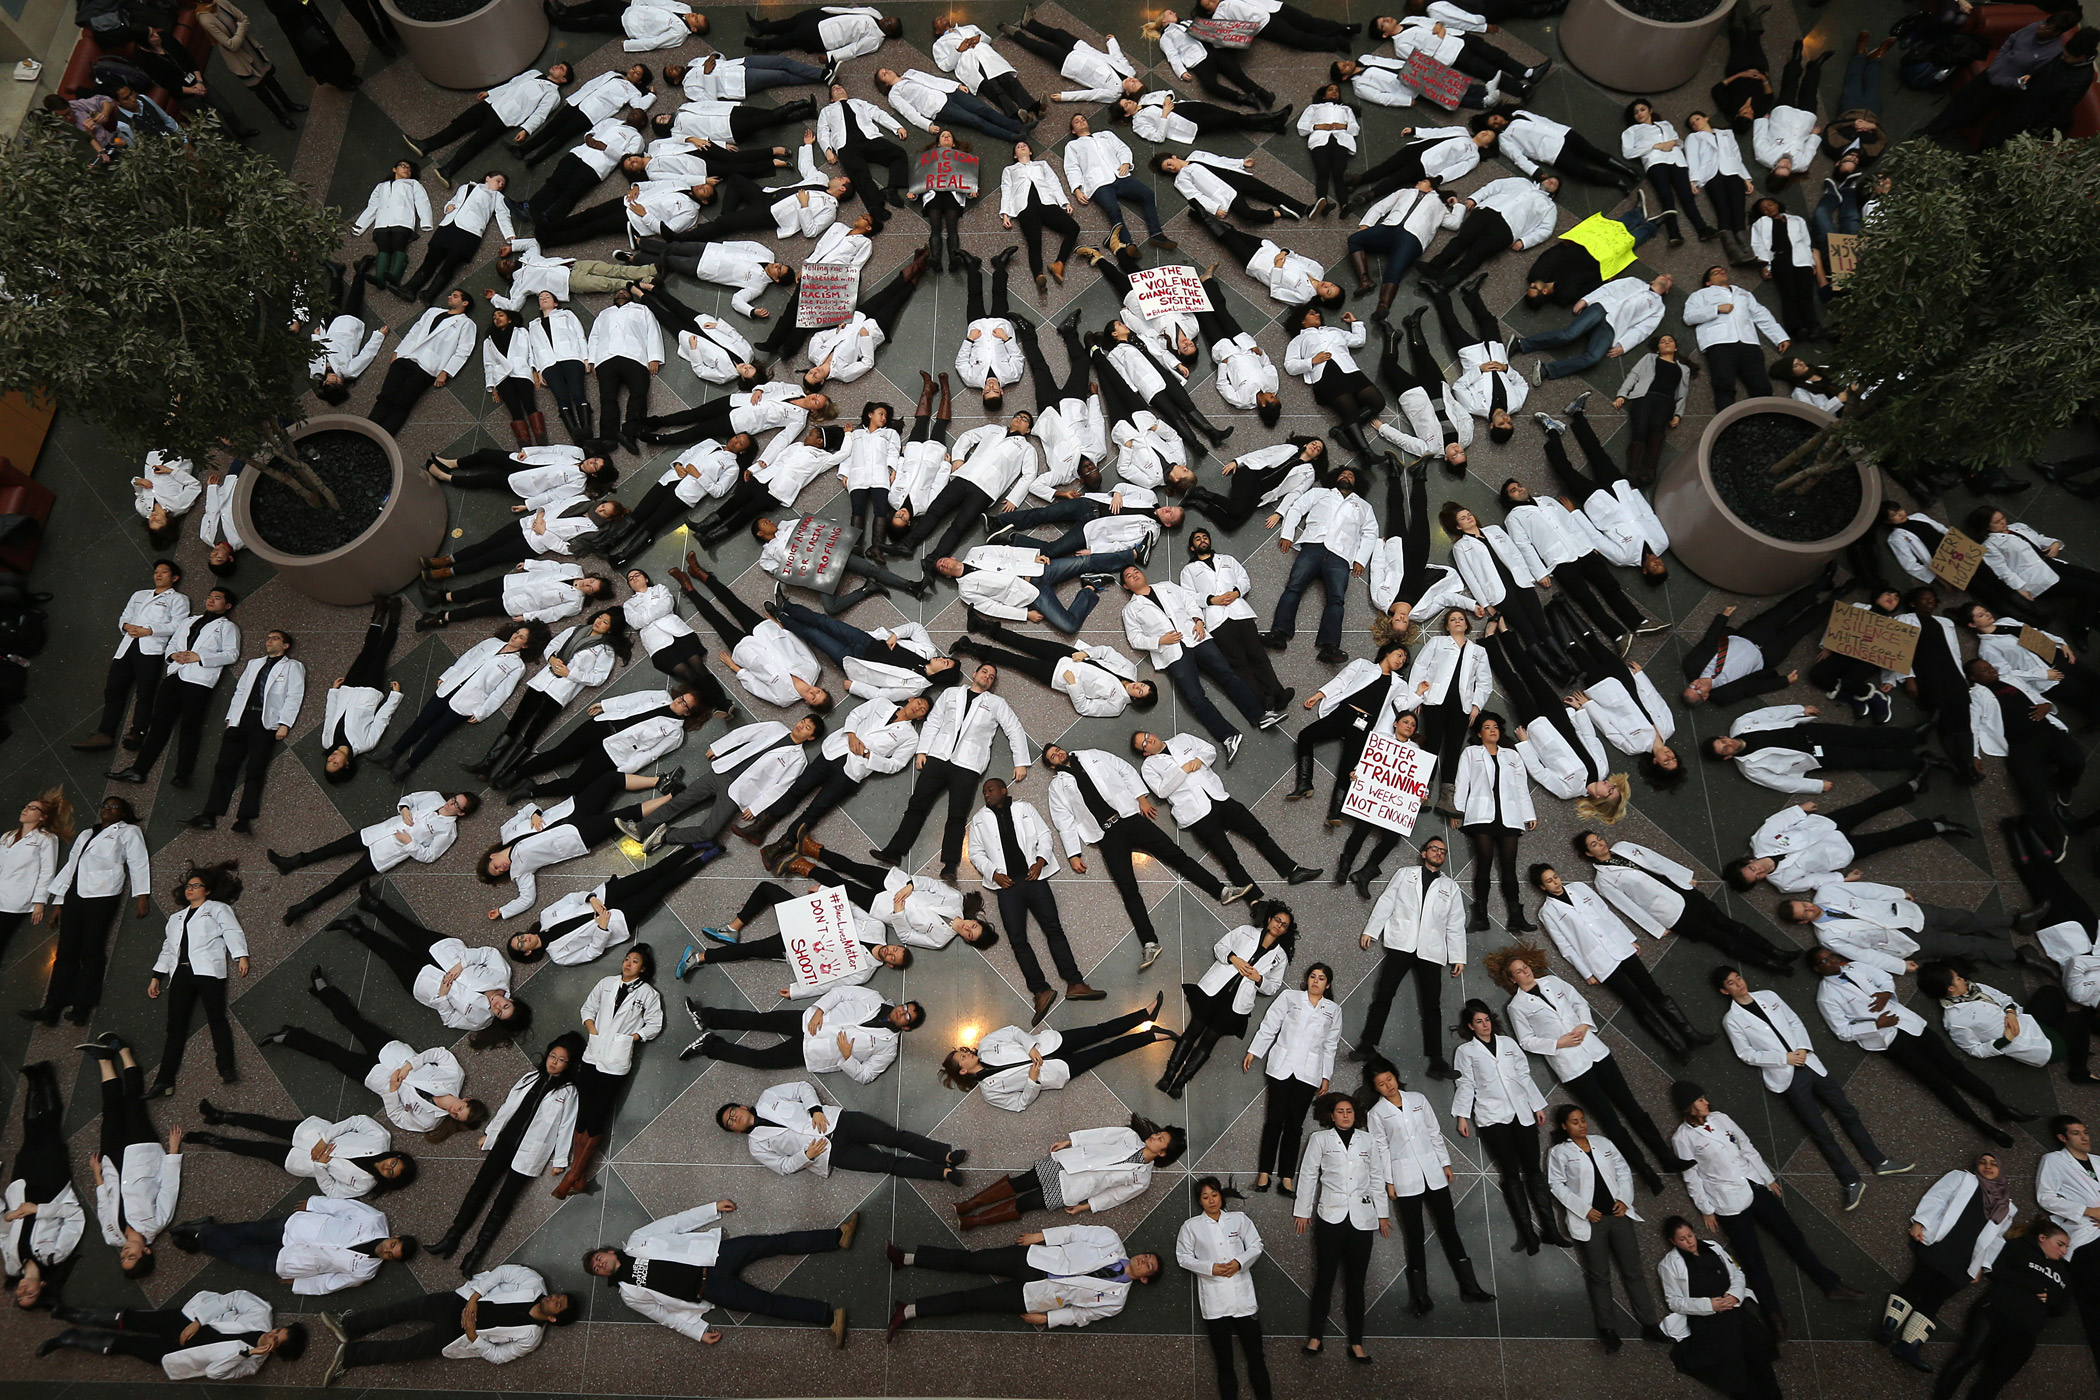 Students participate in a die-in at Harvard Medical School Medical Education Center on Dec. 10, 2014. The protest was held in response to the decisions by authorities to not bring indictments in the police killings of Michael Brown in Ferguson, Mo., and Eric Garner in New York. The Black Lives Matter movement has found support at campus's across the country.